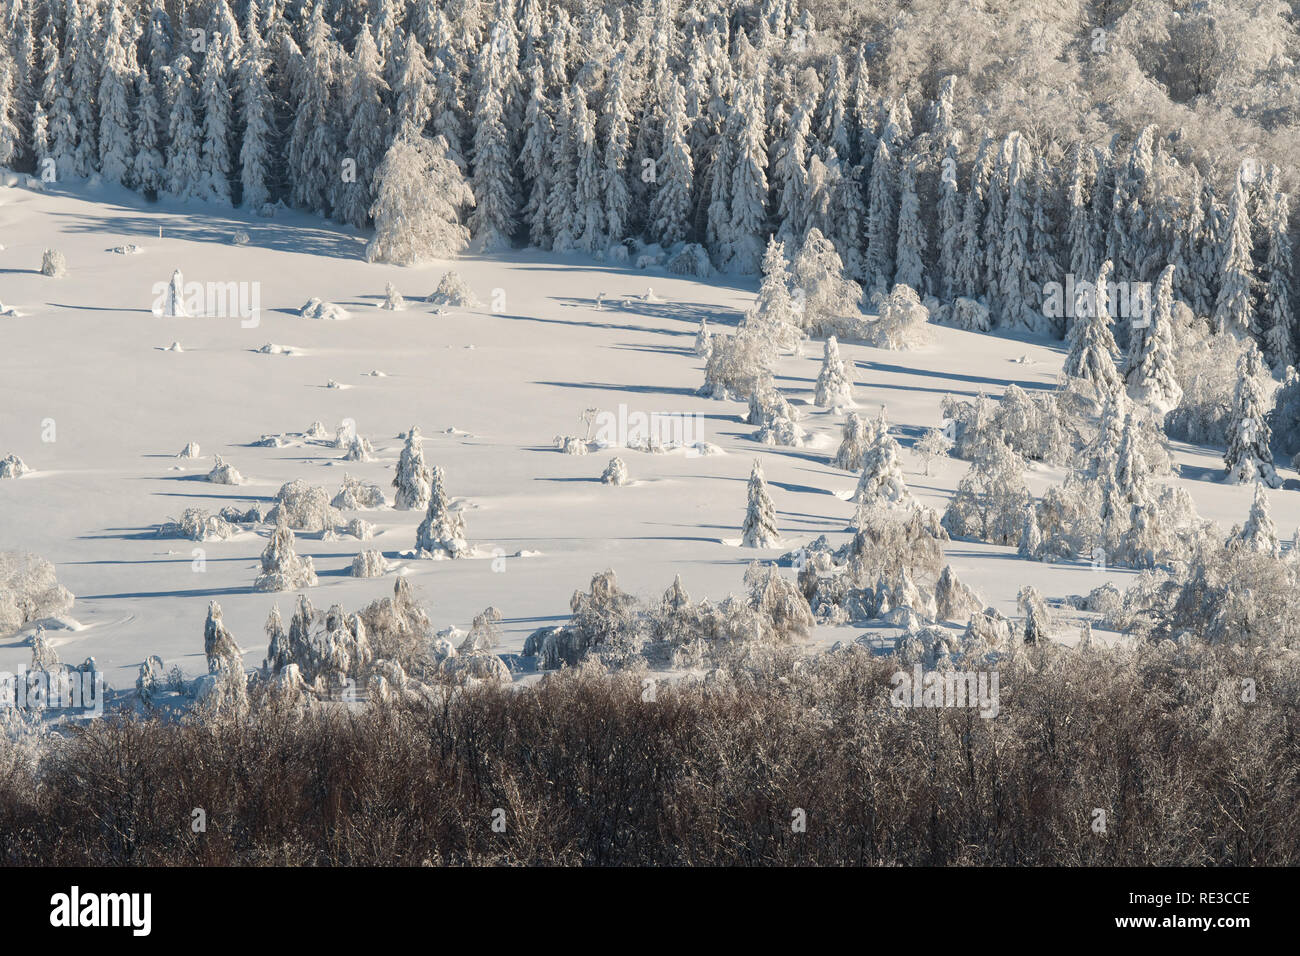 Beautiful snowy forest in the mountains. Winter landscape of the Bieszczady Mountains. Poland - Stock Image